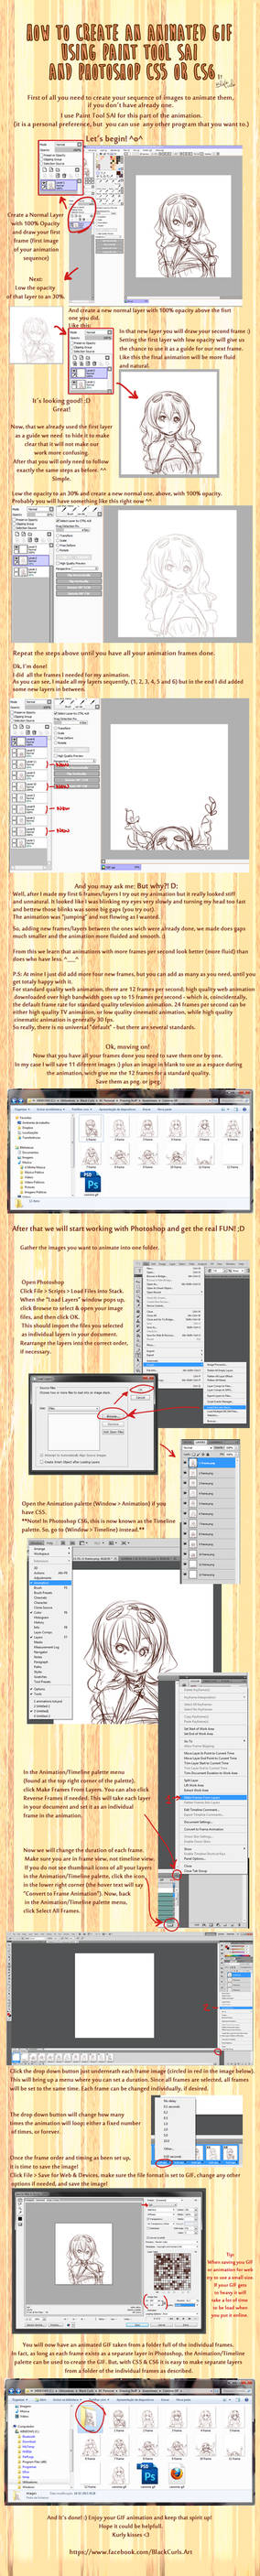 How to create an animated GIF  - SAI and Photoshop